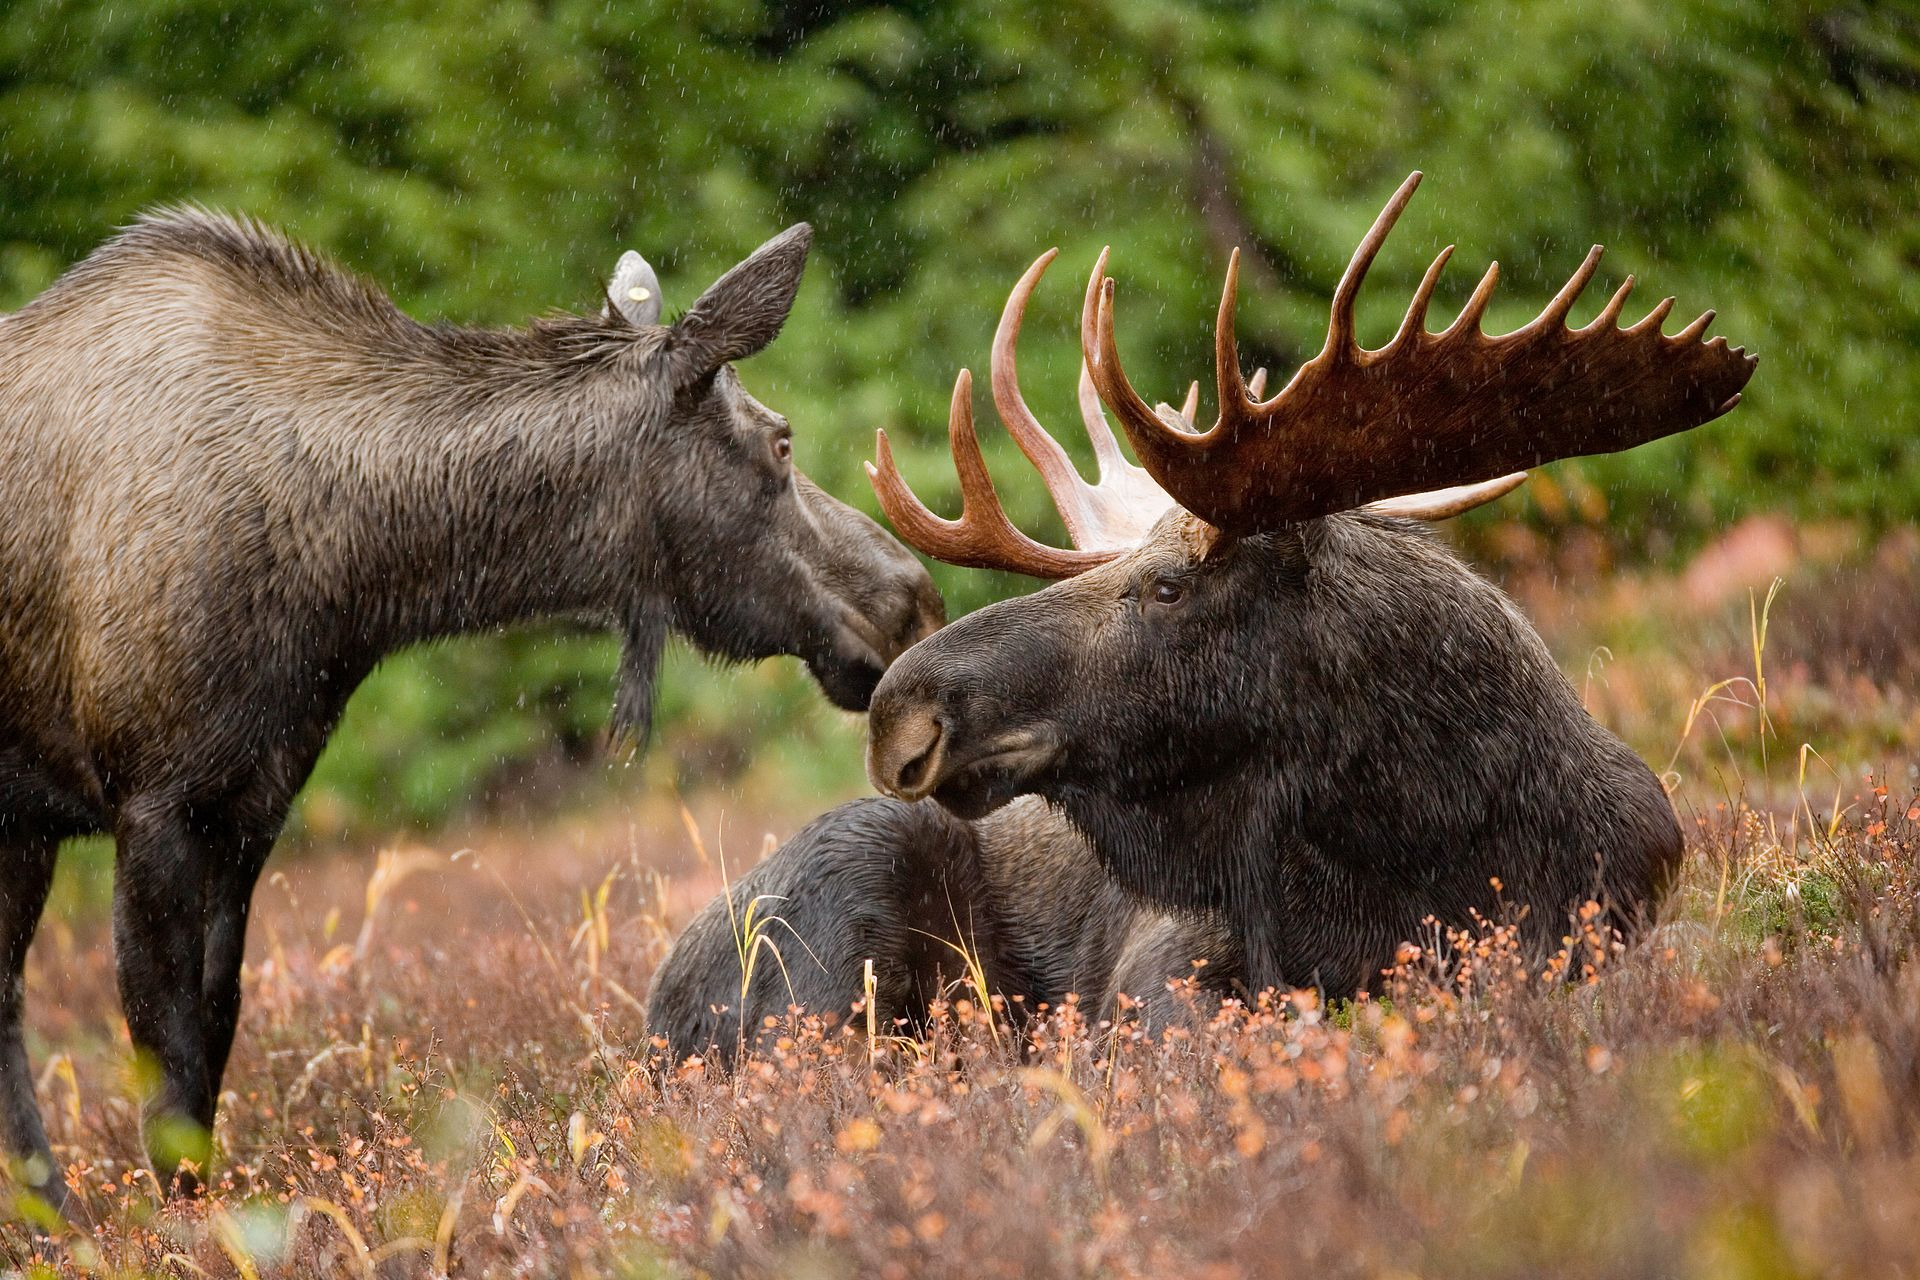 Moose  Alces alces  (these are Alaskan moose) are often mentioned in discussions of domestication attempts. The commonest thing said is that they come with too much baggage to allow domestication -- but this simply might not be true at all. Image: Ryan Hagerty, in the public domain.  Original at Pixnio.